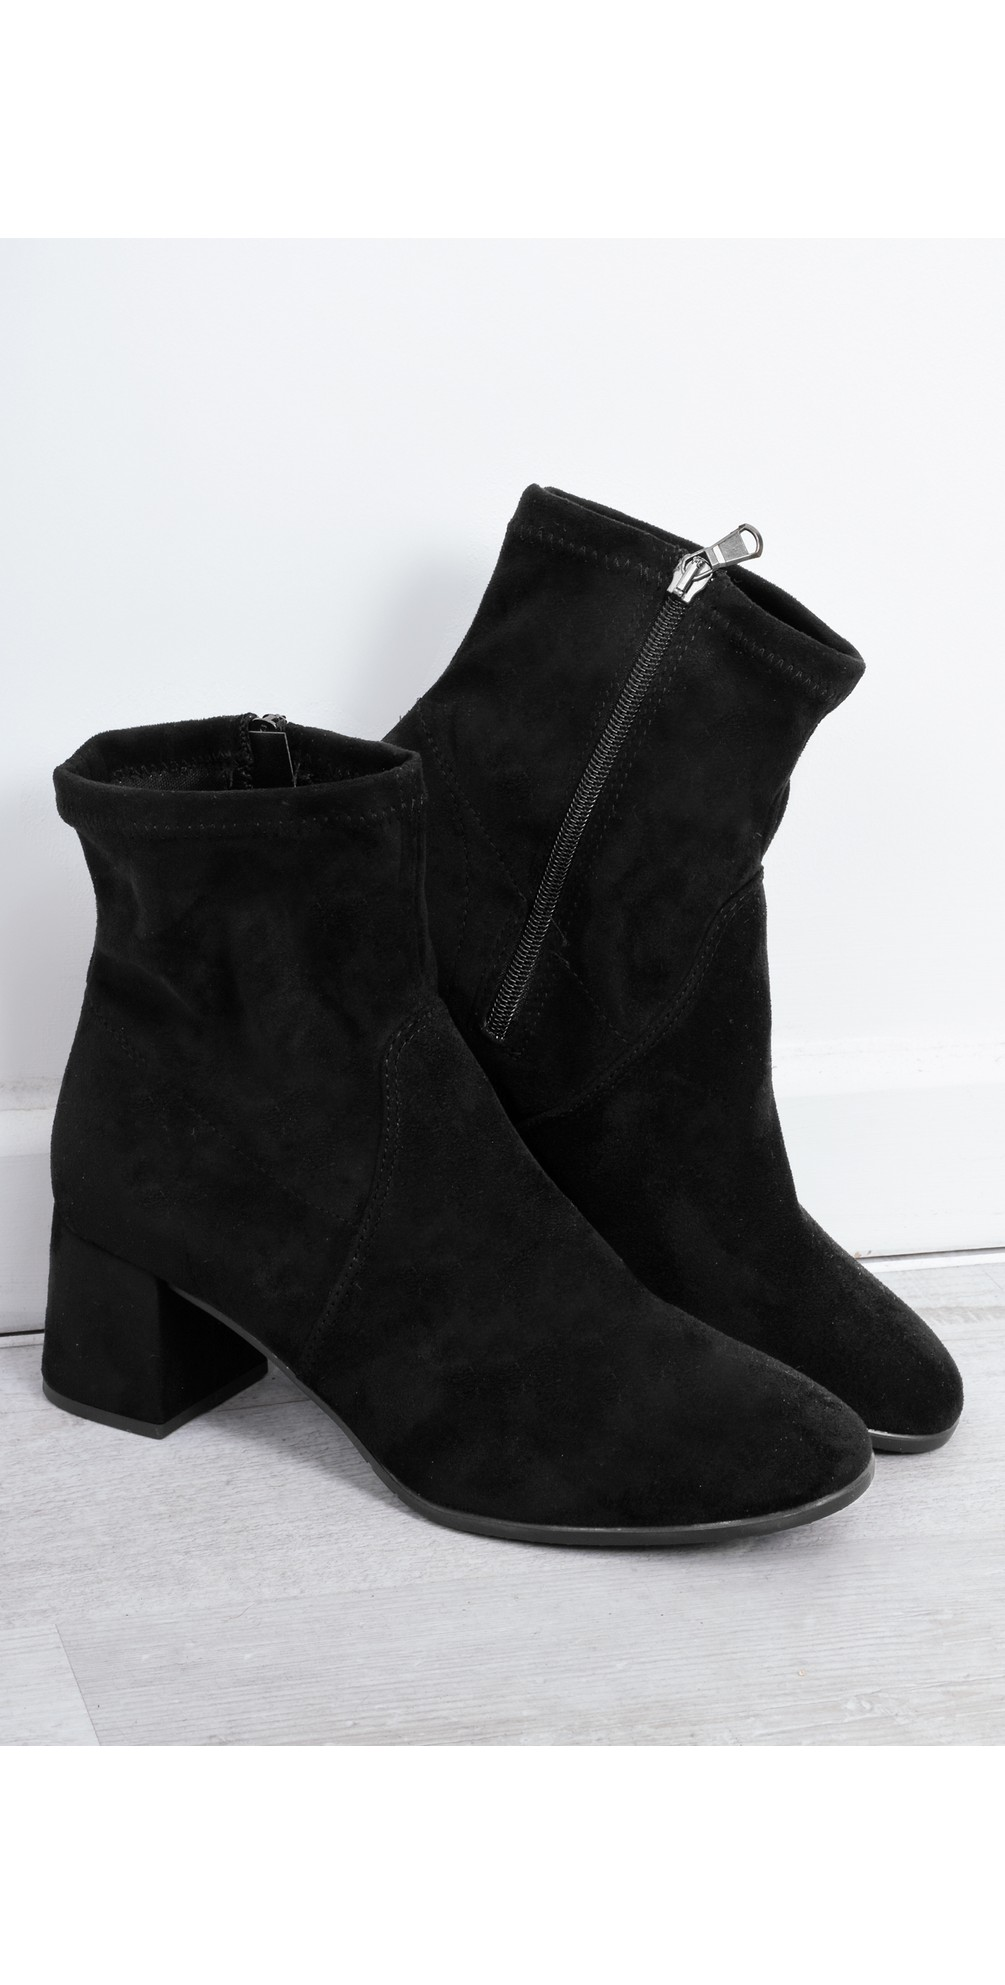 Tamaris Nadda Stretch Ankle Boot Block Heel in Black